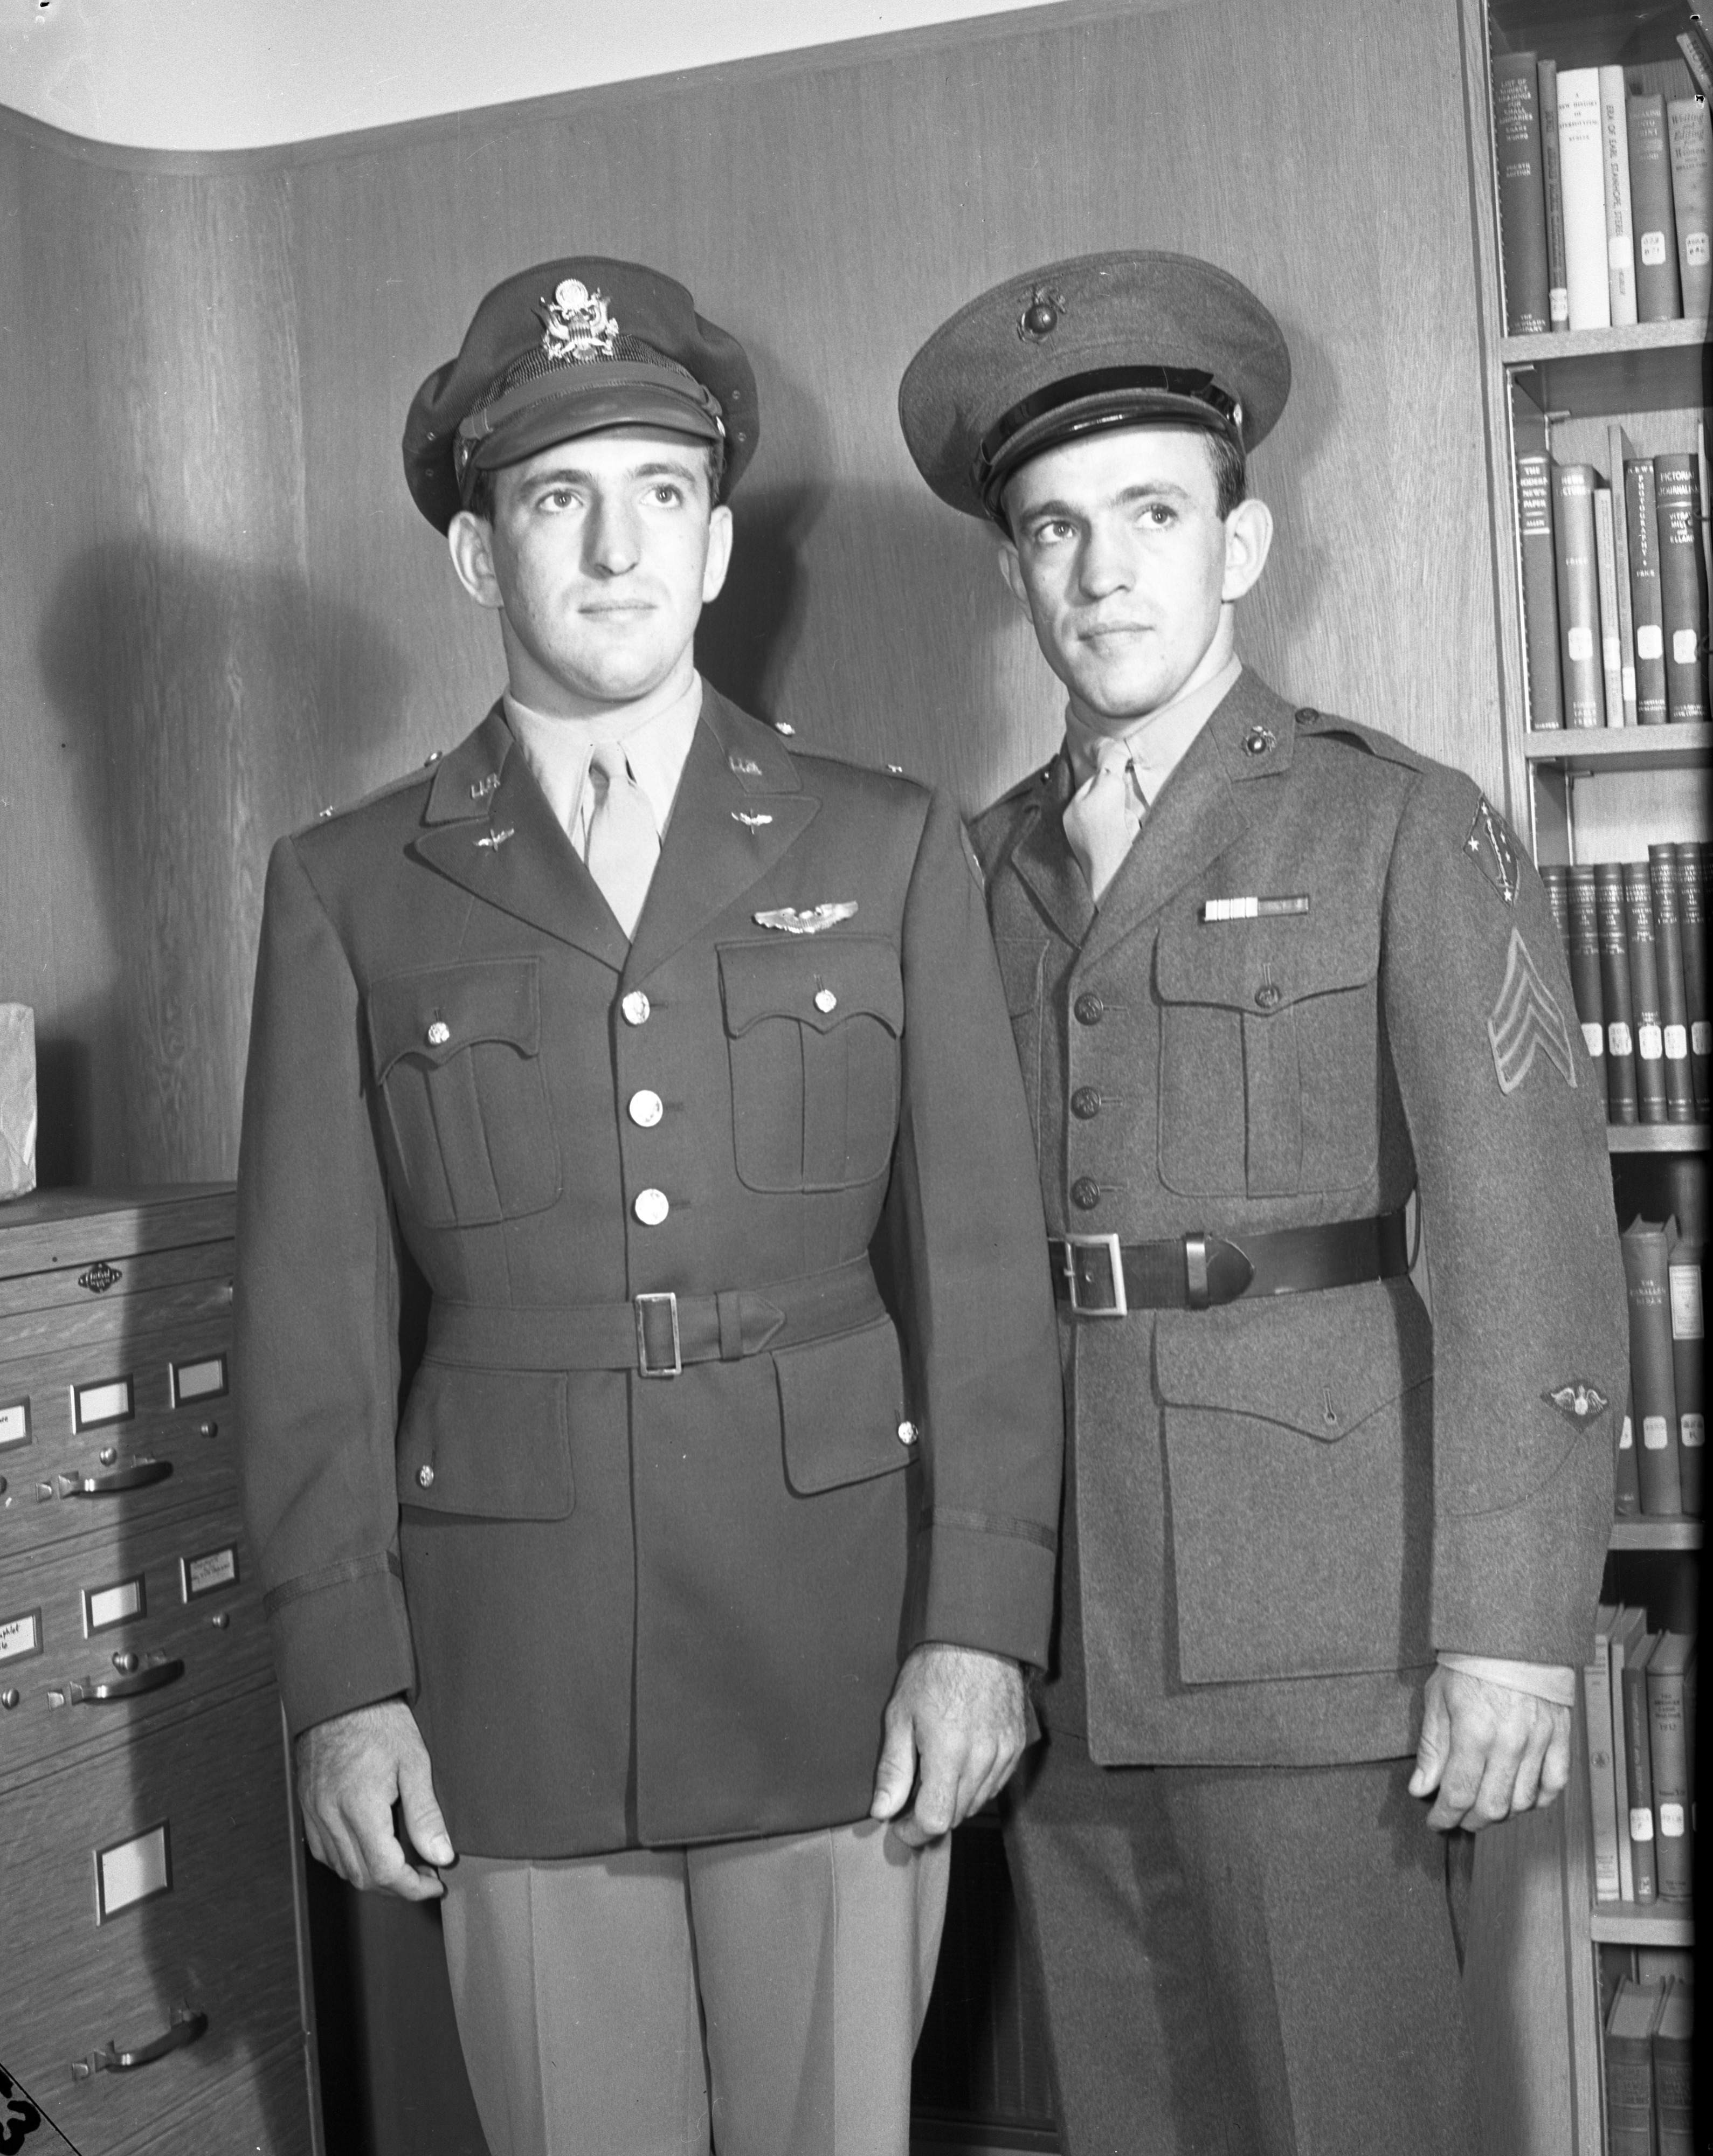 Becker Twins, Soldier and Marine, September 1943 image